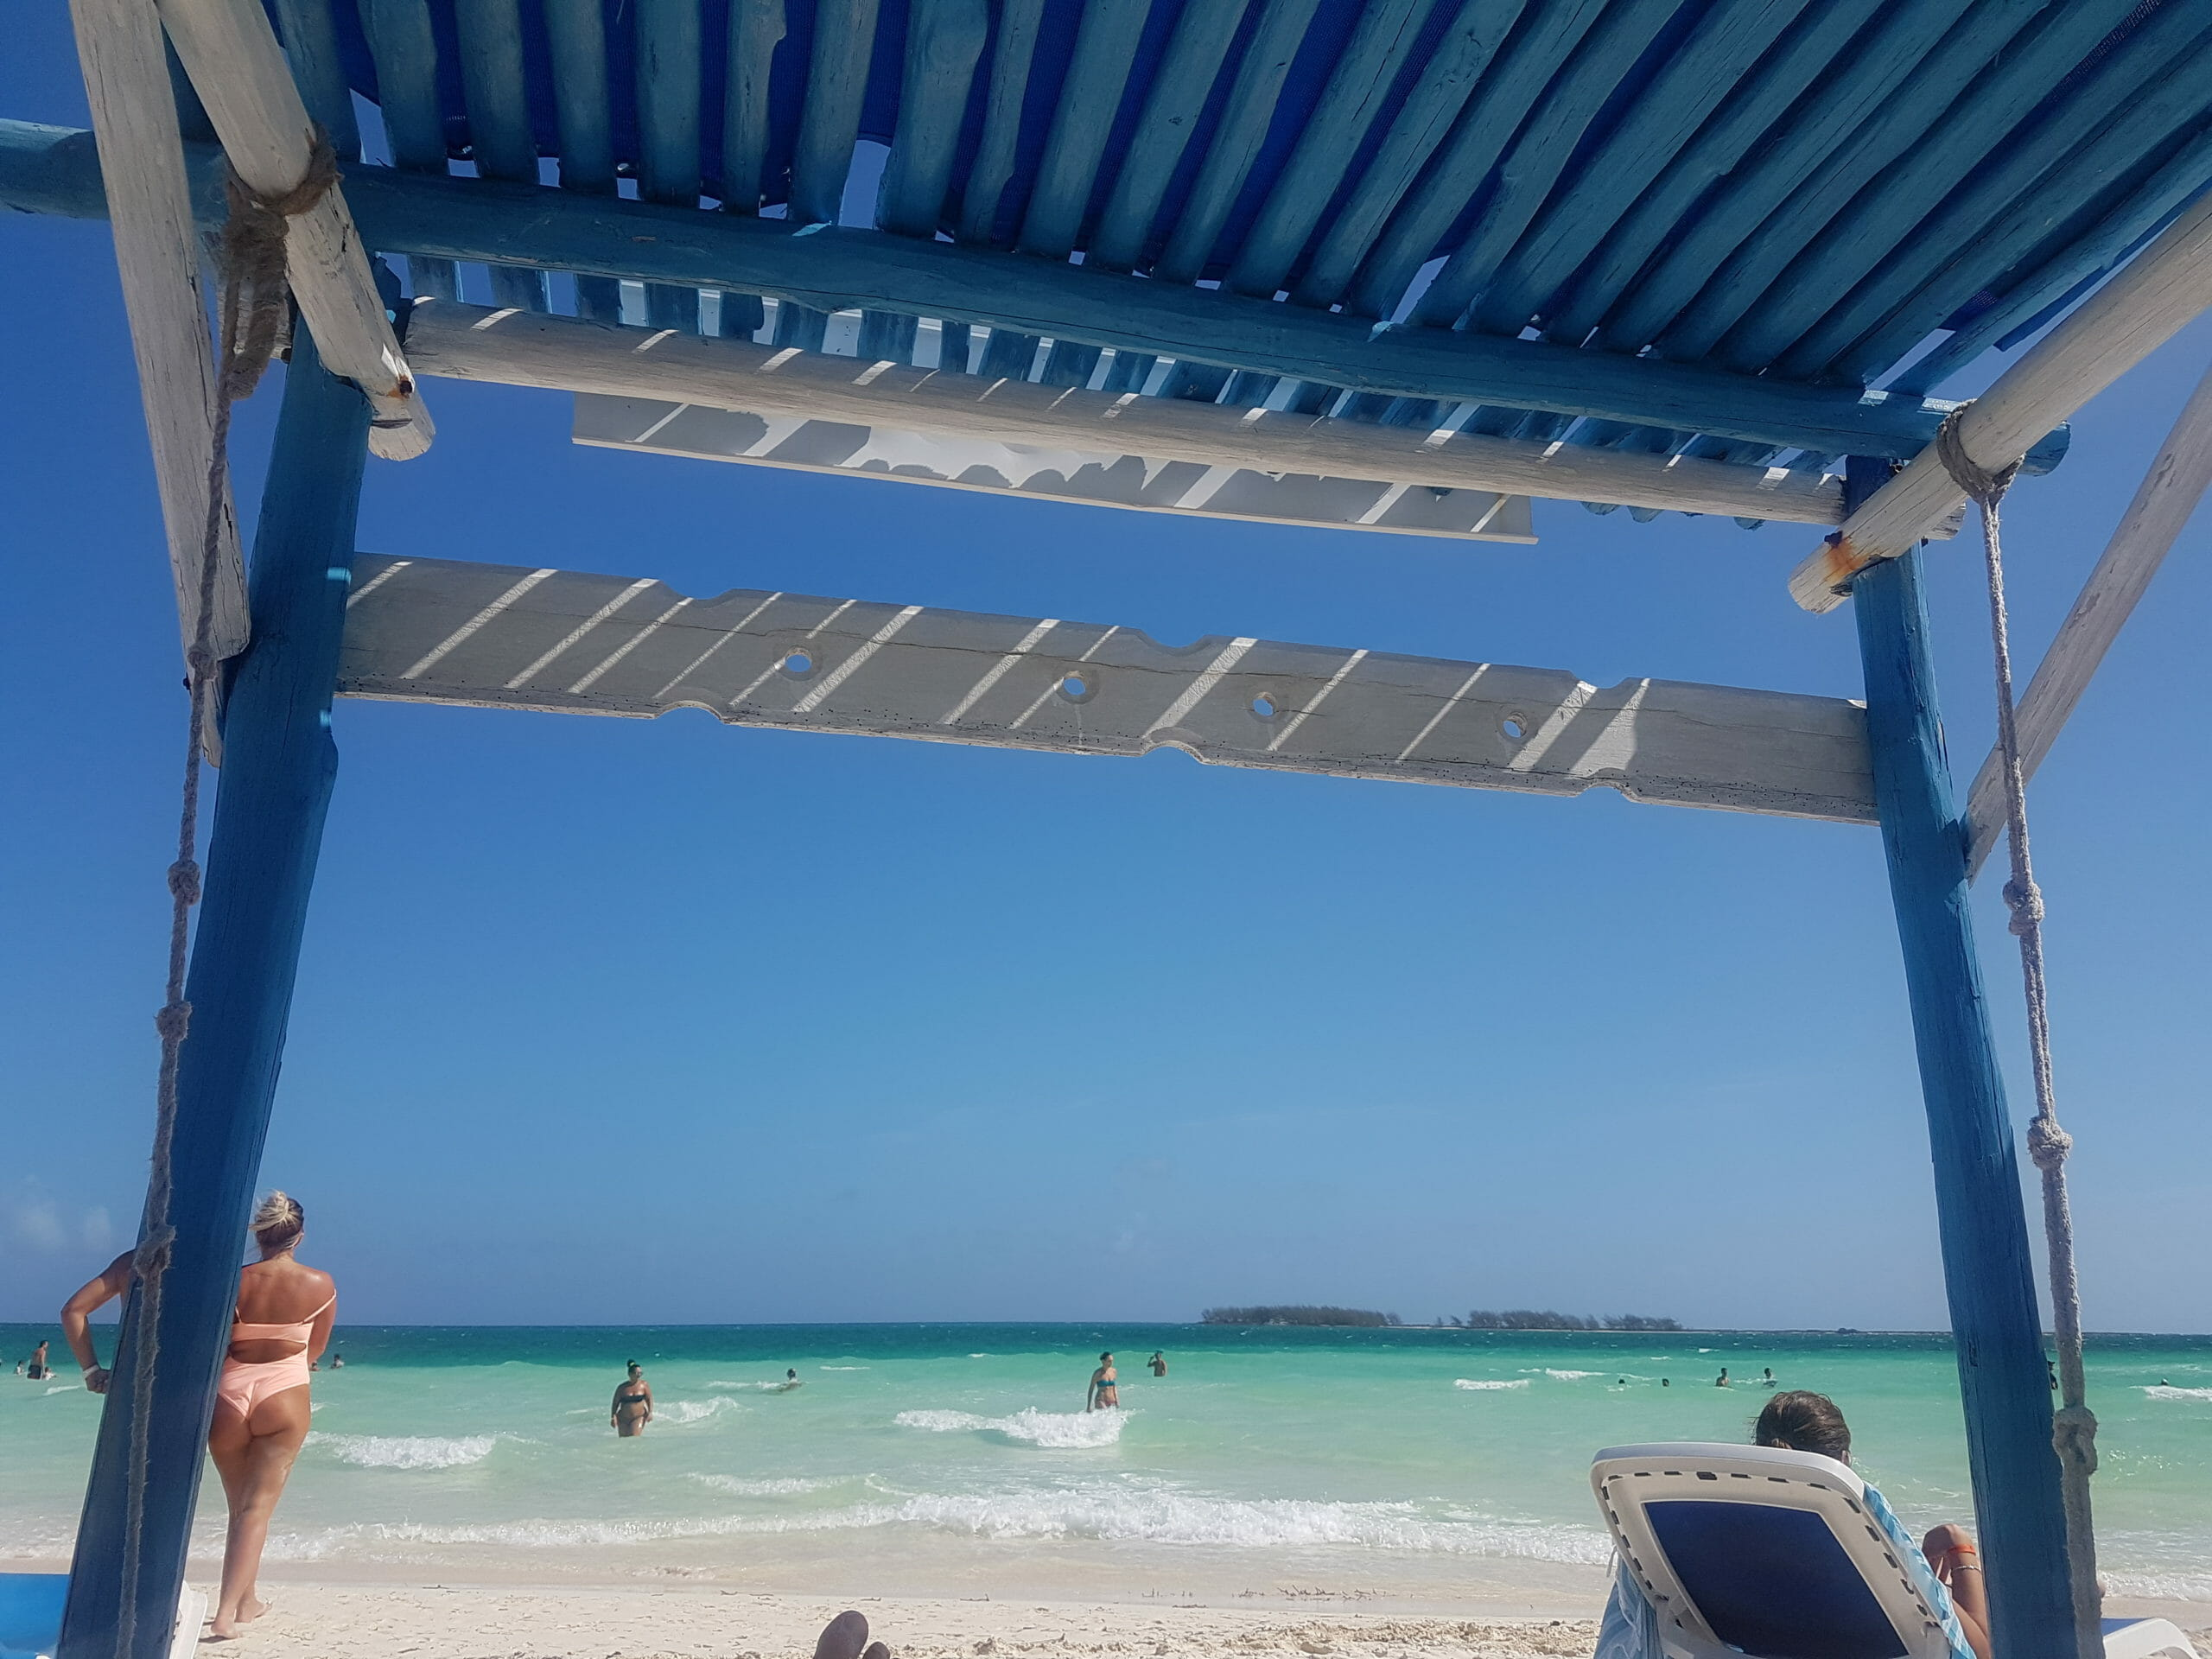 Ten things I learnt from my trip to Cuba